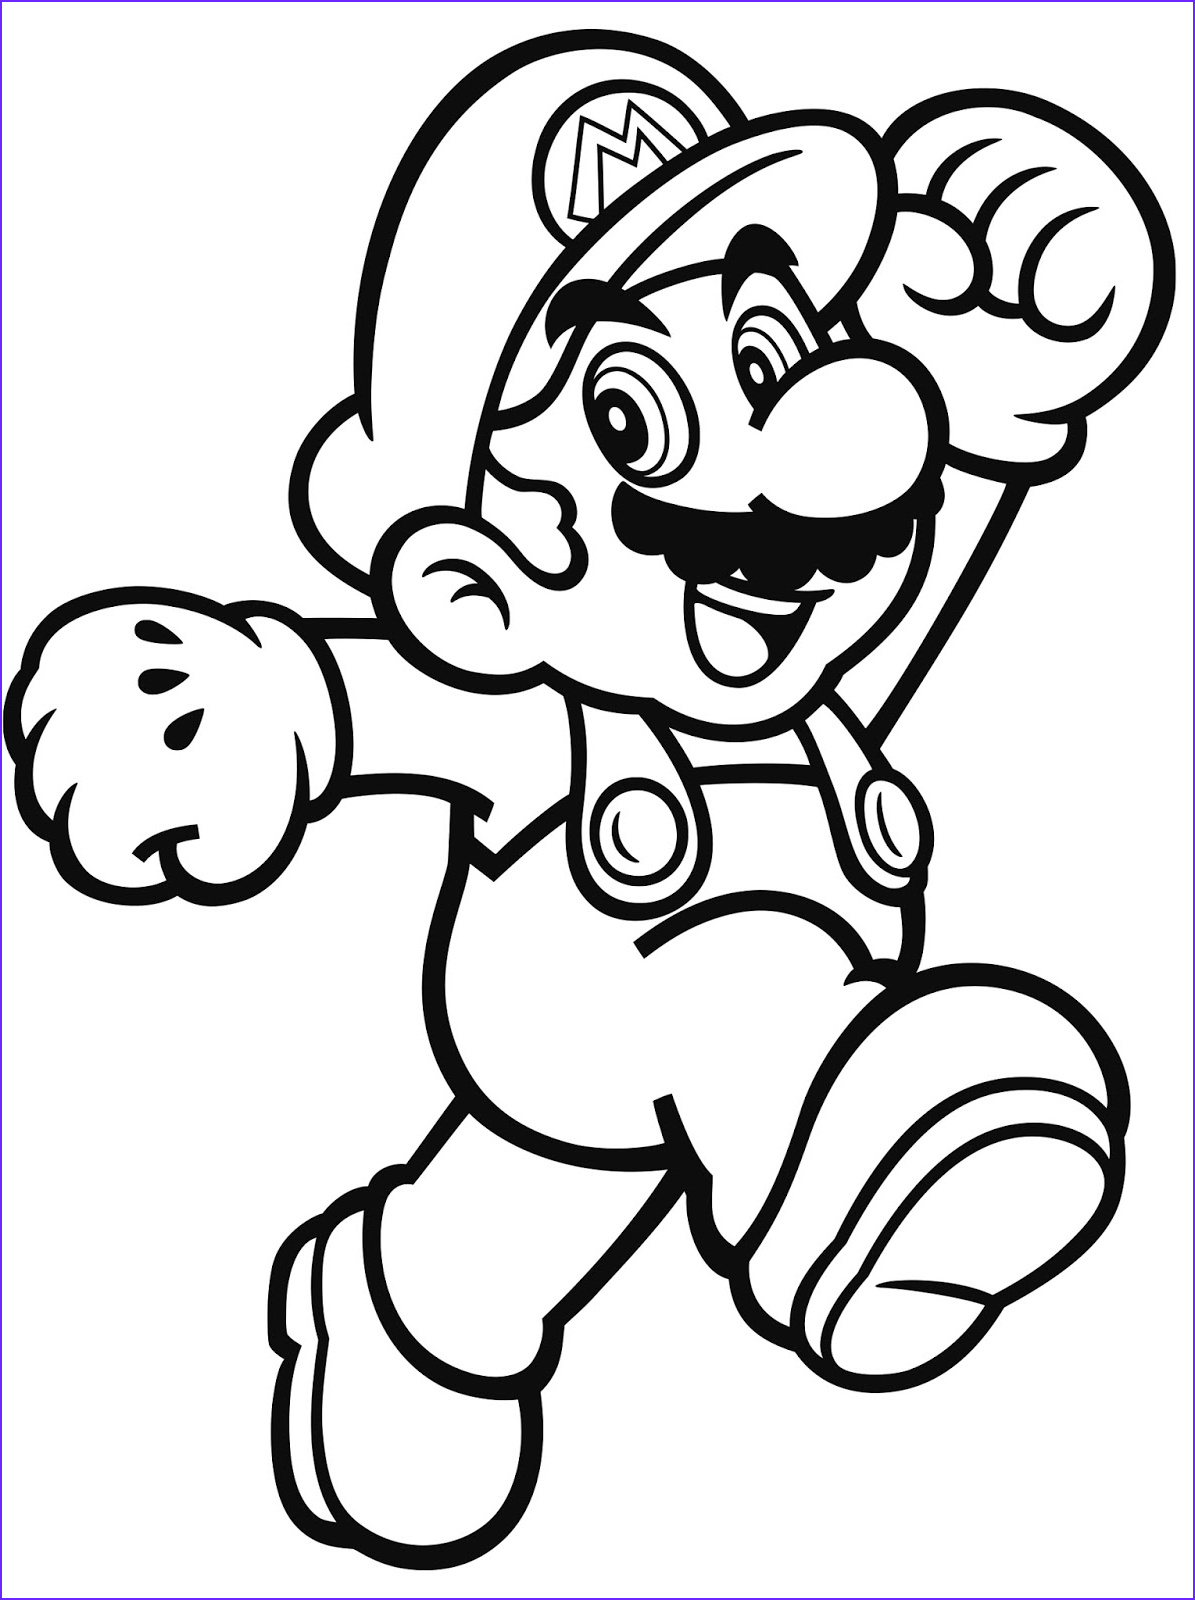 Luigi Coloring Pages Best Of Photos Nintendo Launches Coloring Pages with Characters Mario